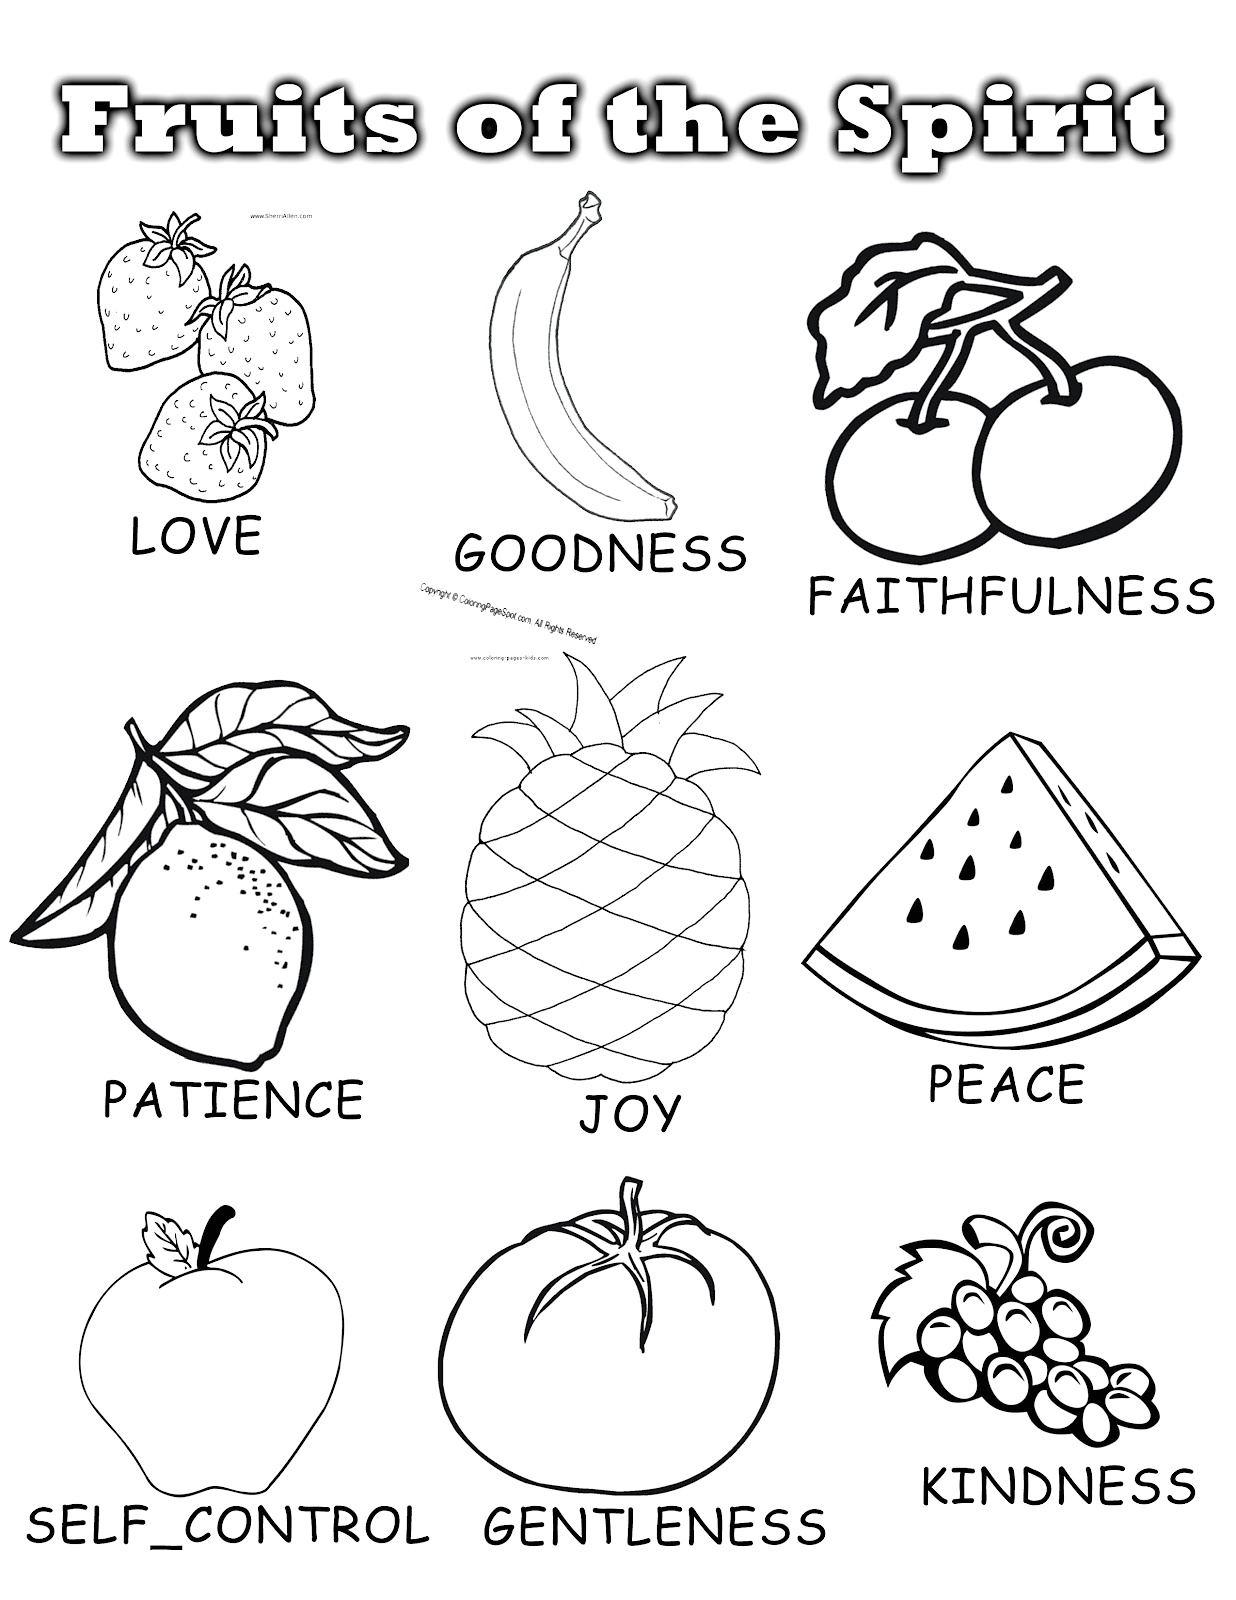 Free Printable Fruit Of the Spirit Coloring Pages Penny Pinching Mom Fruits Of the Spirit Sunday School Unit